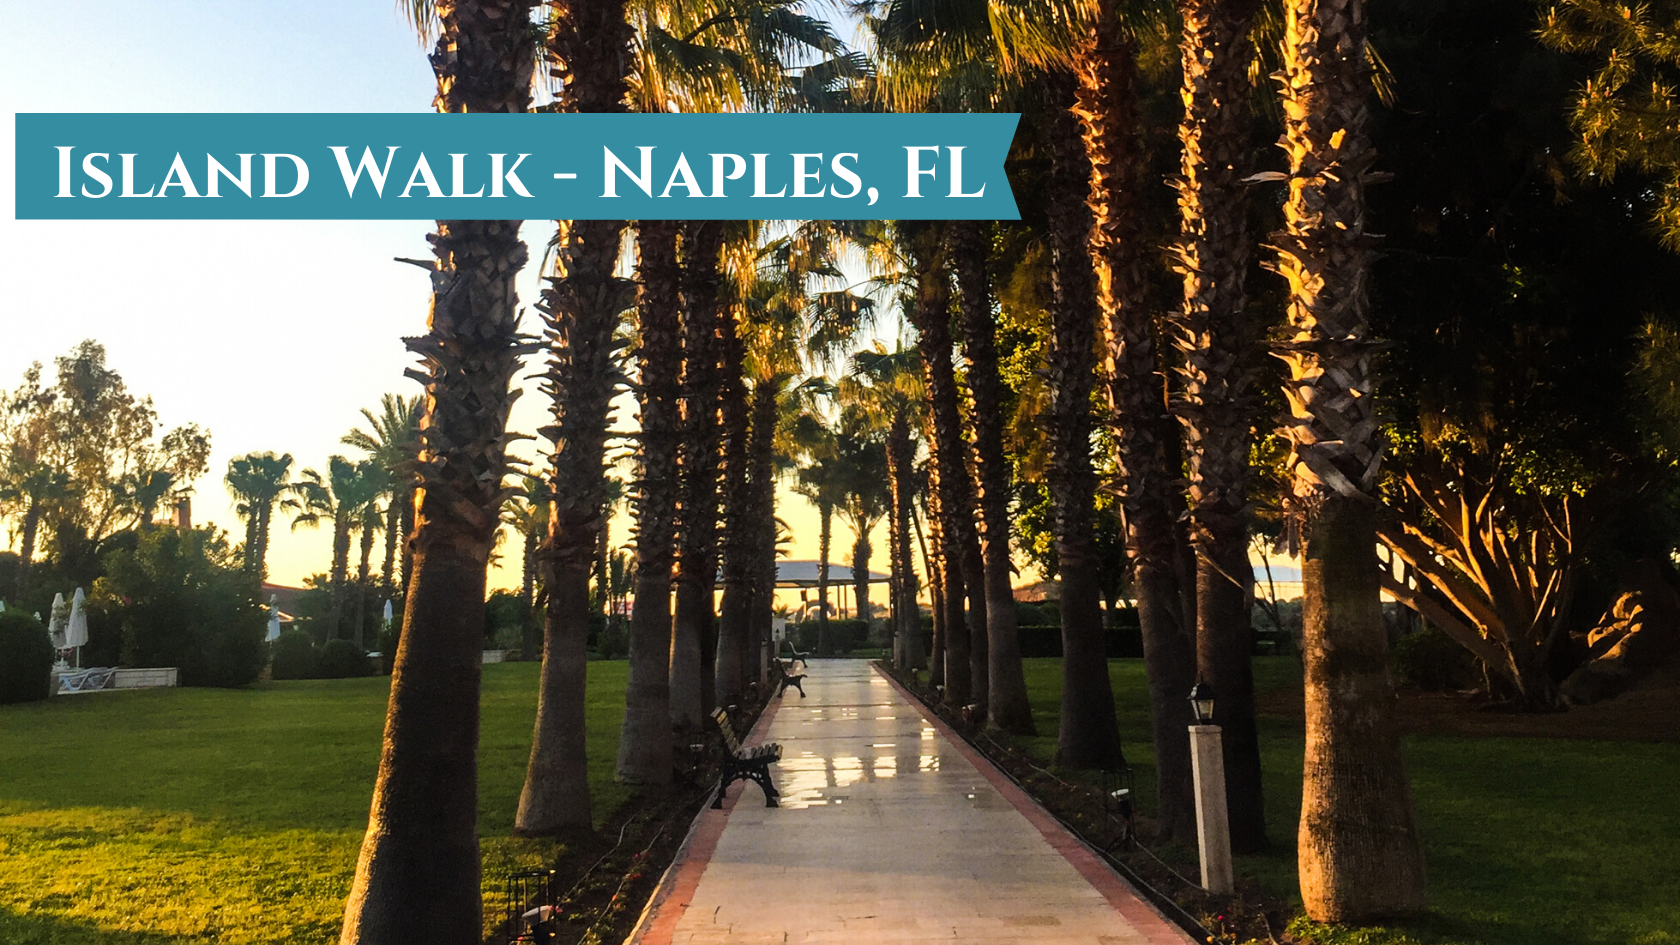 Island Walk - Naples, FL